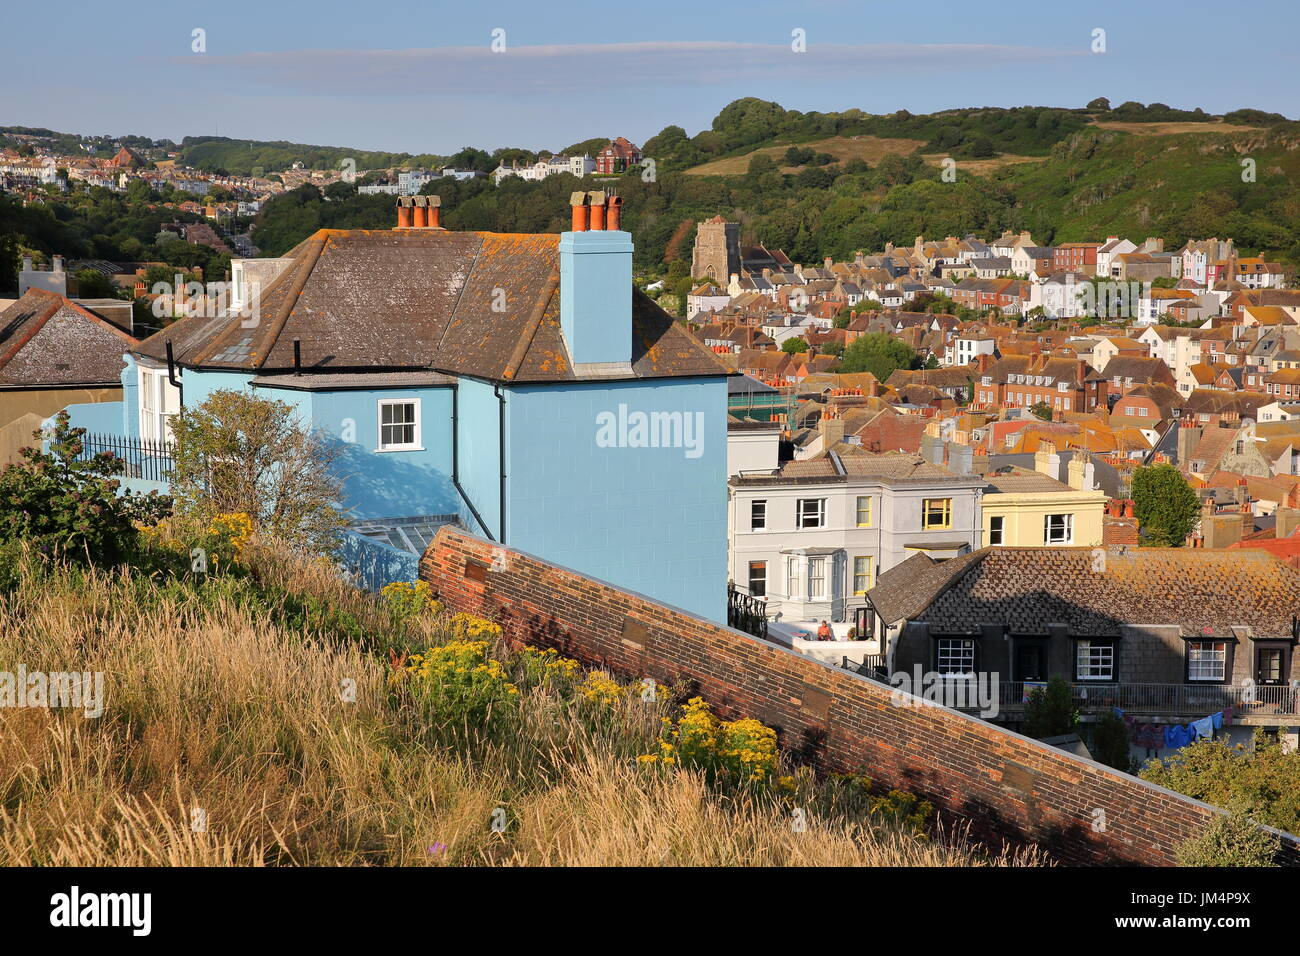 General view of Hastings old town from West Hill with East hills in the background, Hastings, UK - Stock Image